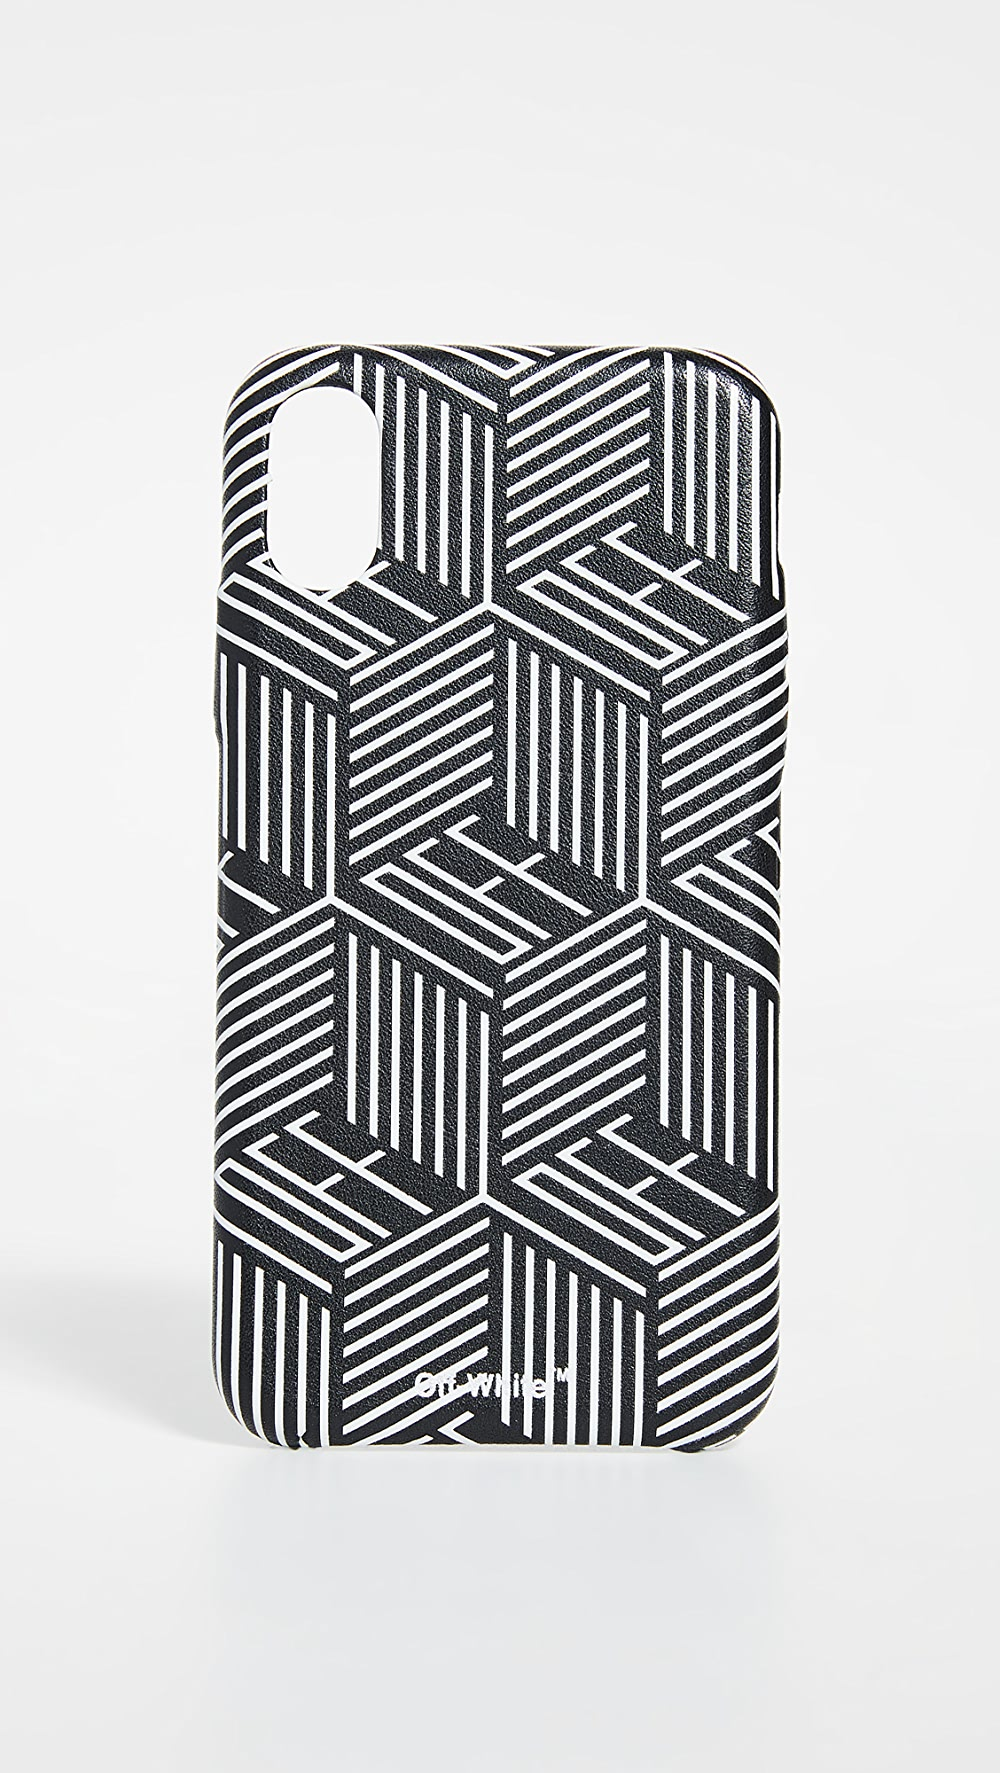 Alert Off-white - Monogram Iphone X Case High Standard In Quality And Hygiene